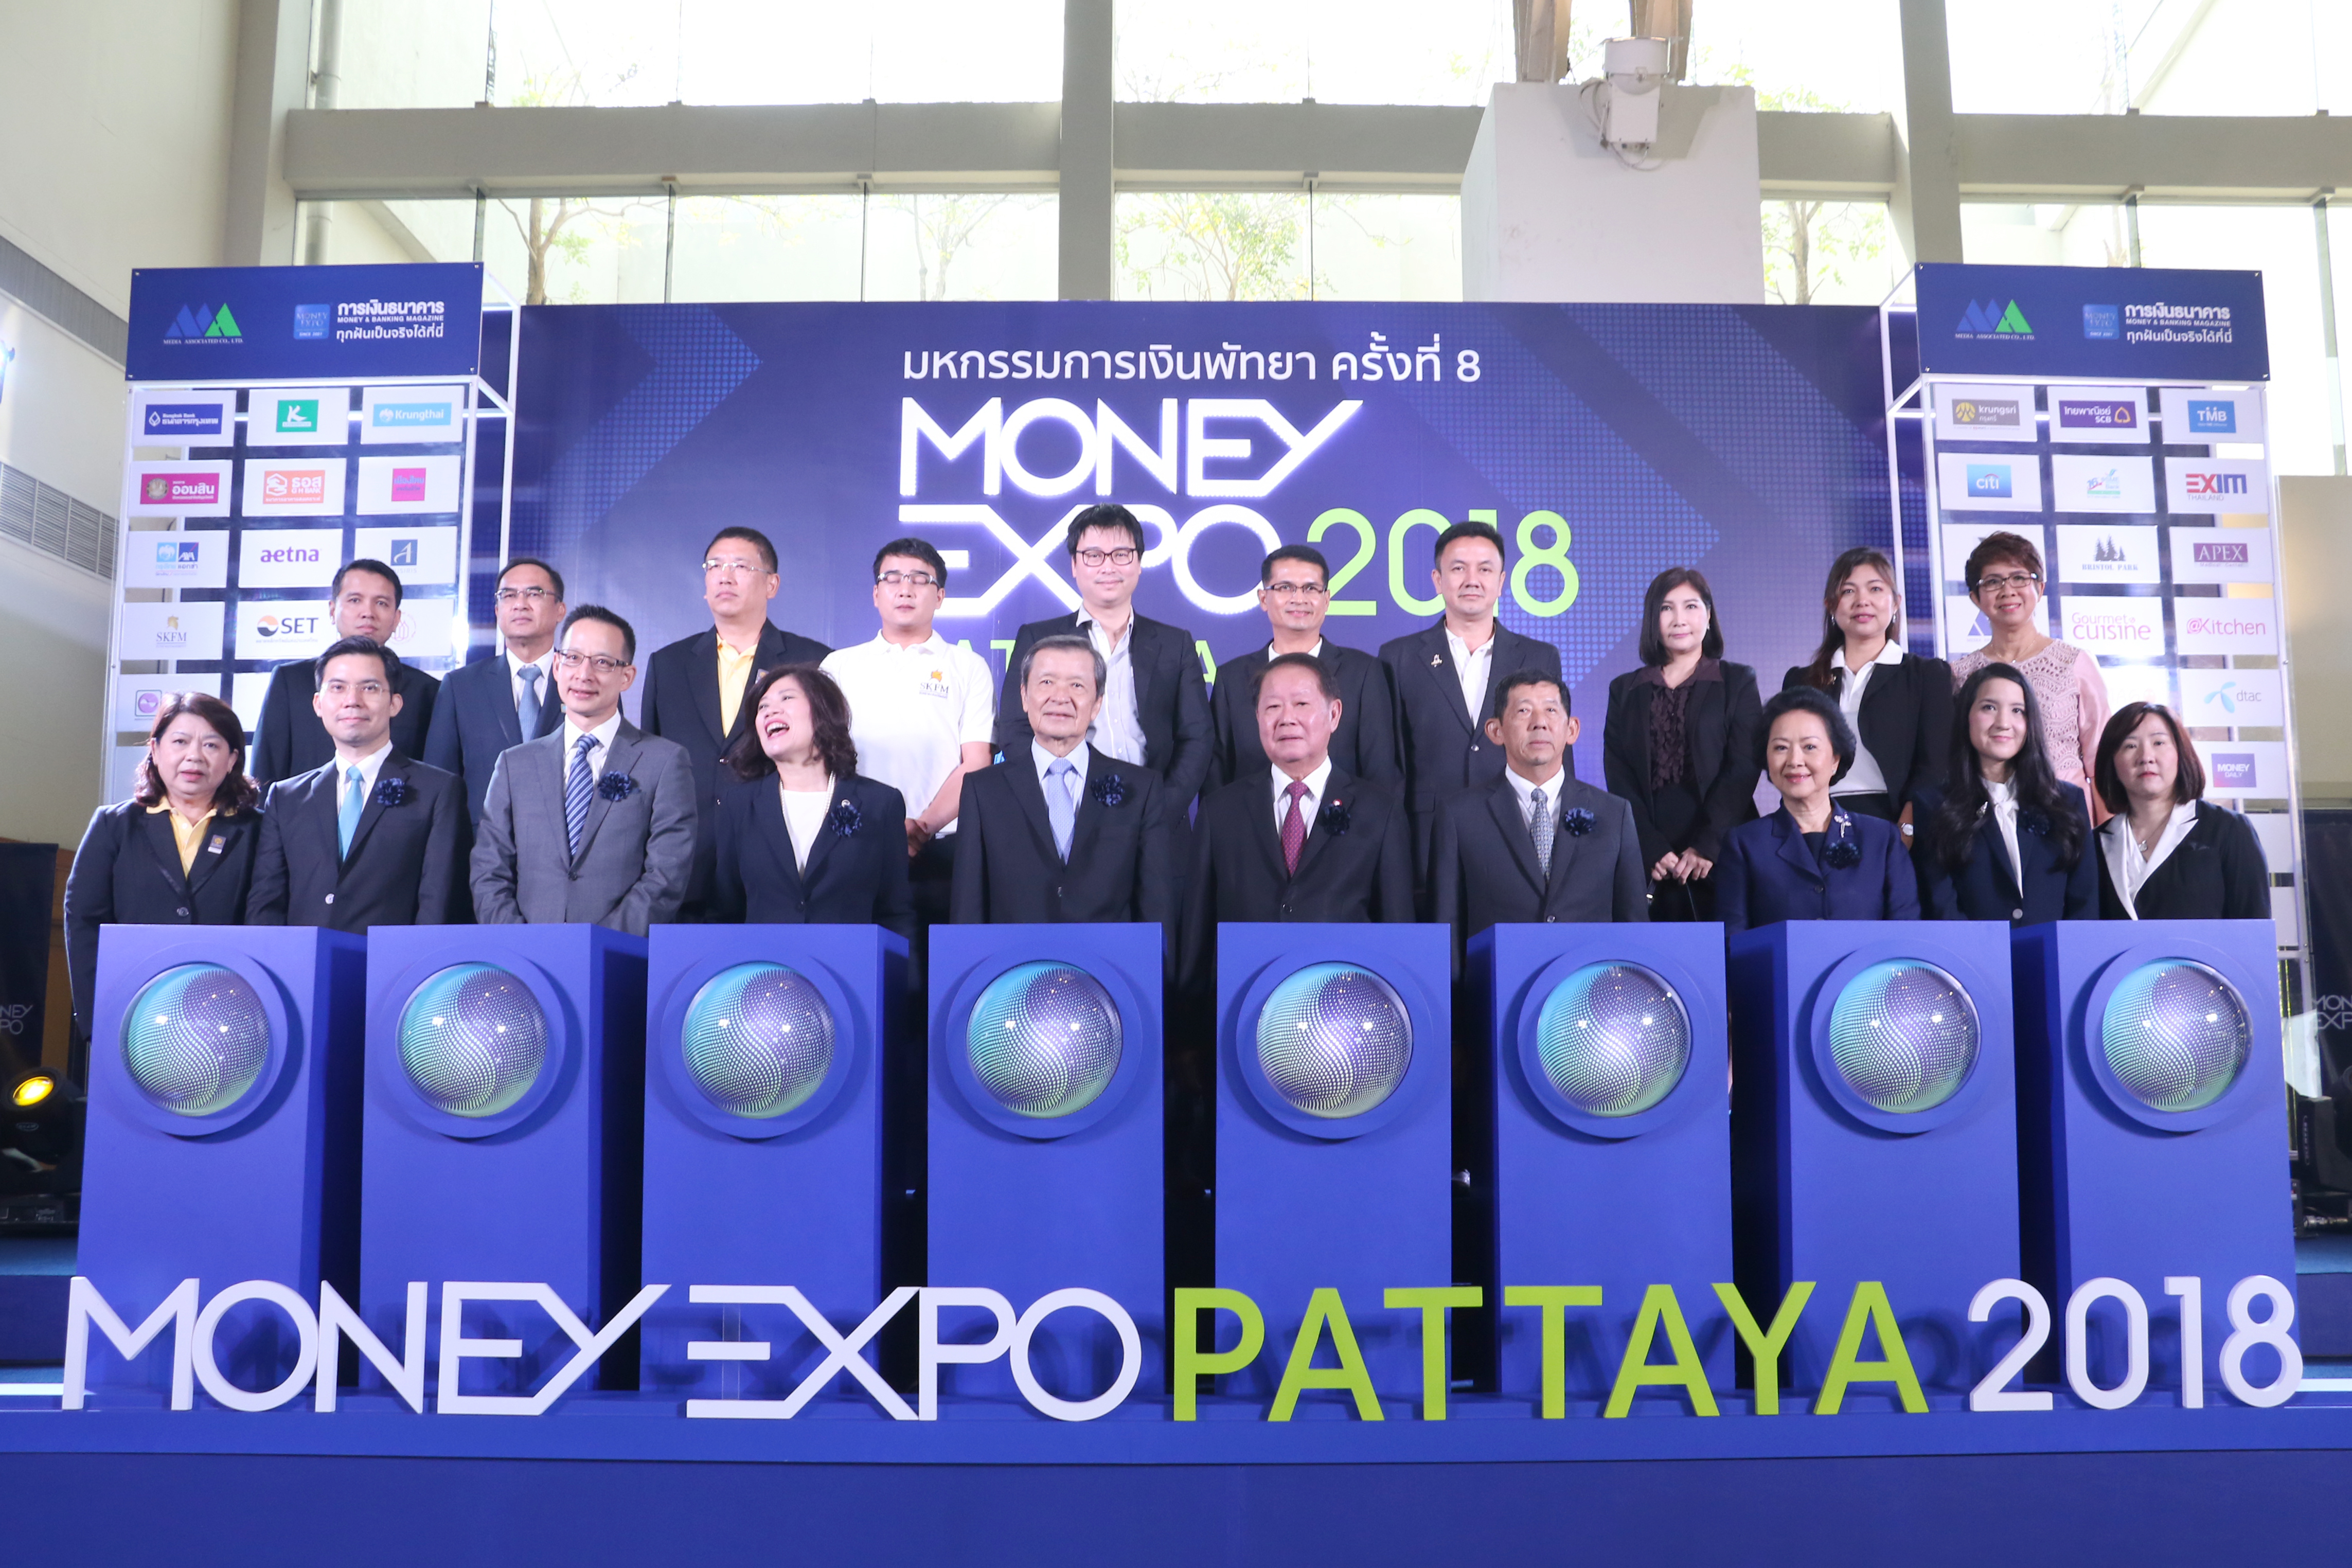 Money Expo Pattaya 2018 Successfully Held at Award-winning PEACH for the 8th Time